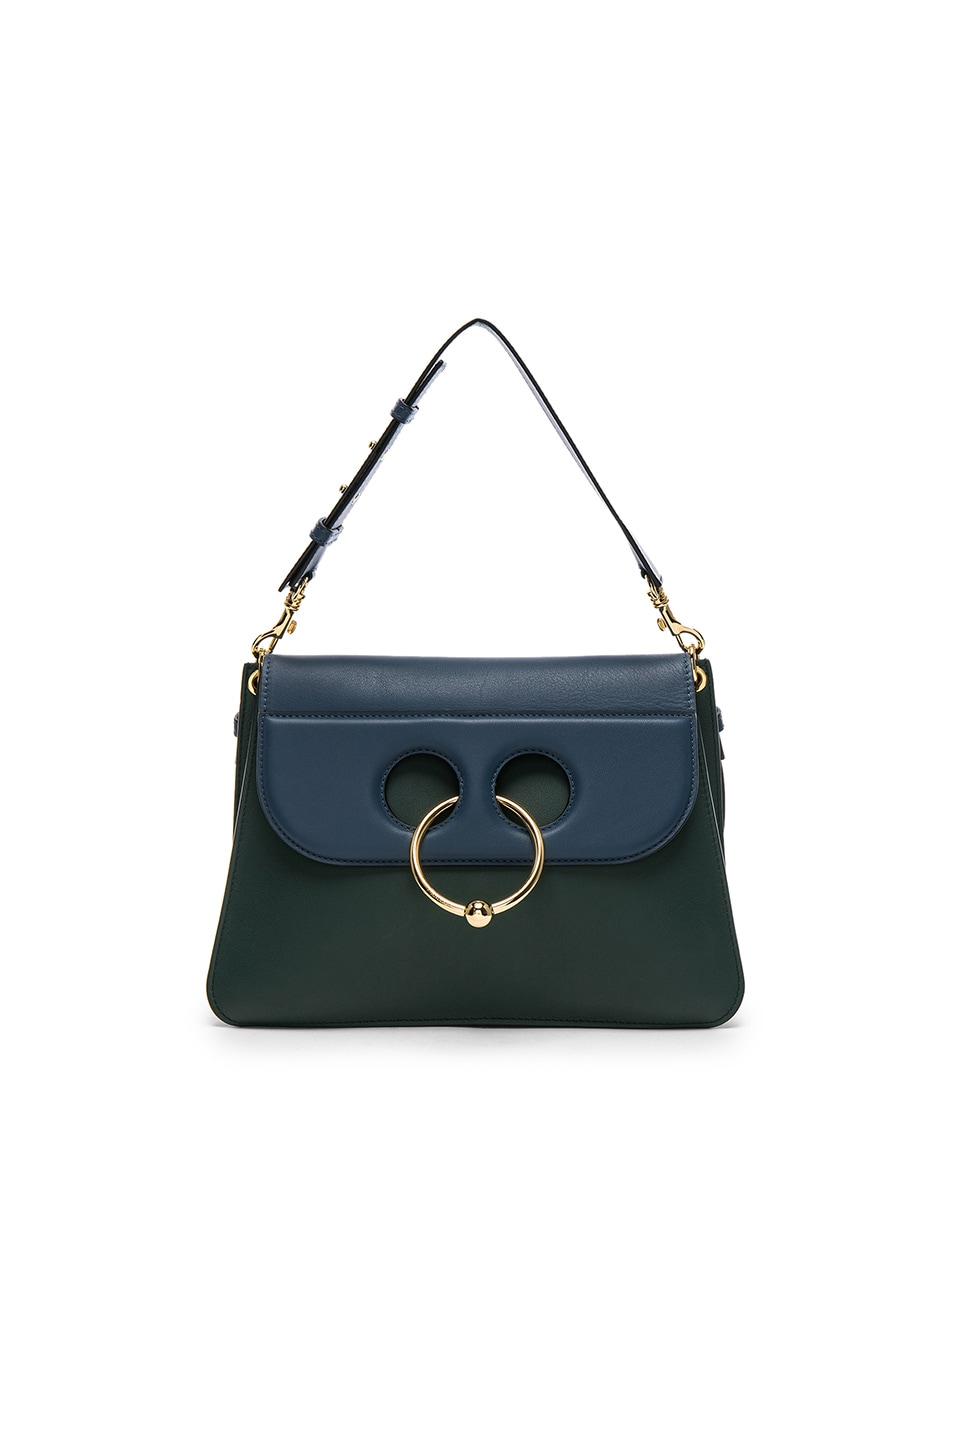 Image 1 of JW Anderson Medium Pierce Bag in Selva